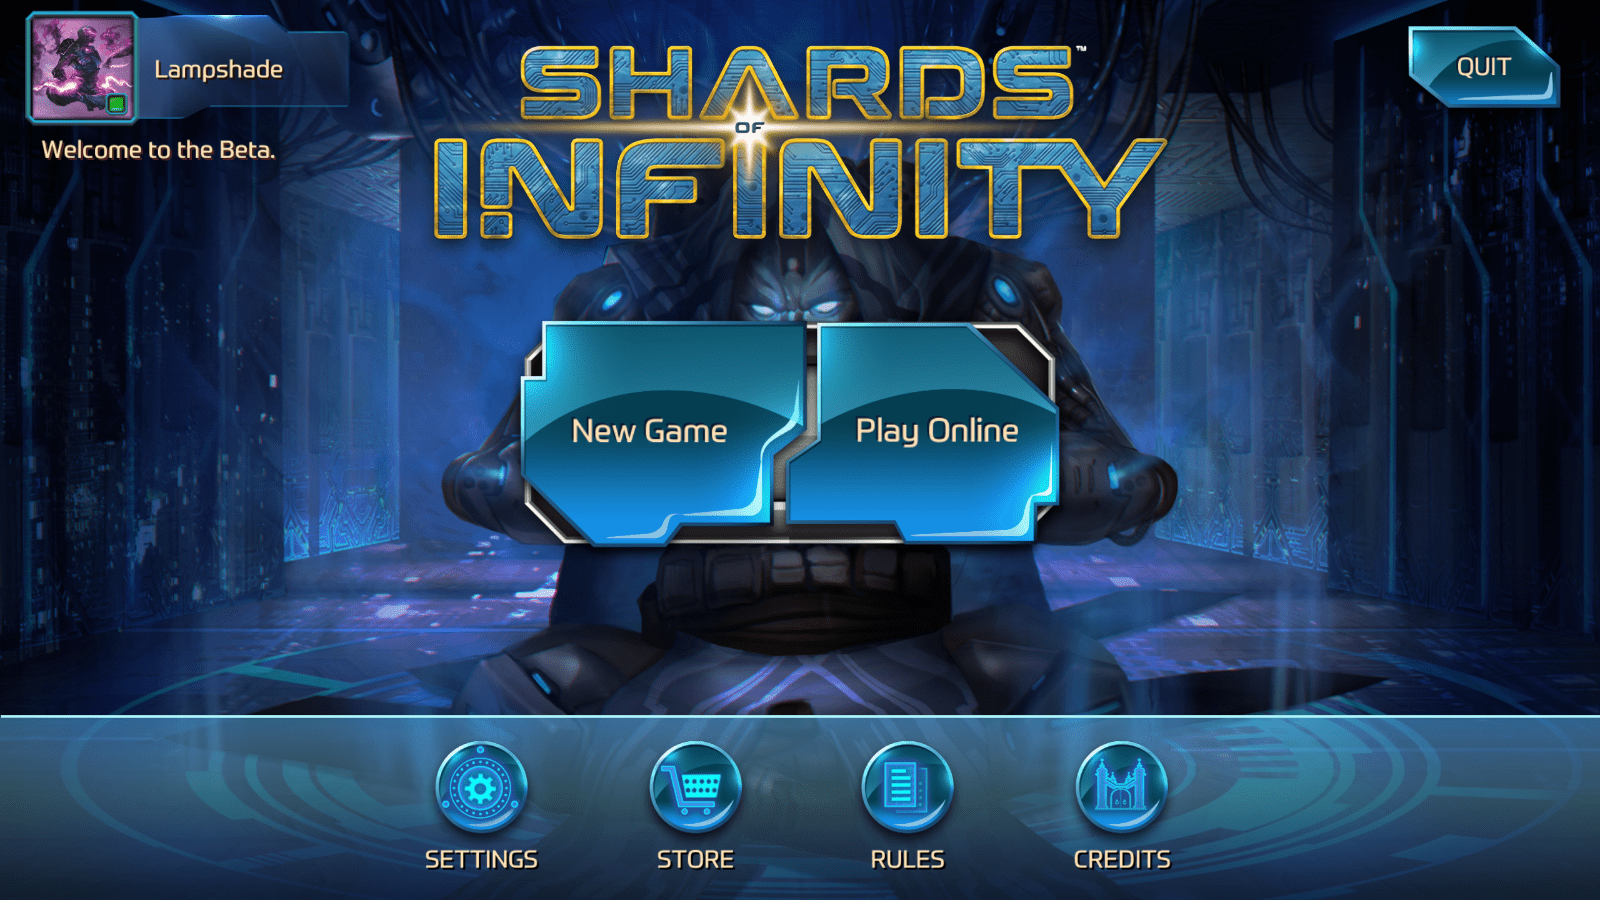 shards of infinity - menu